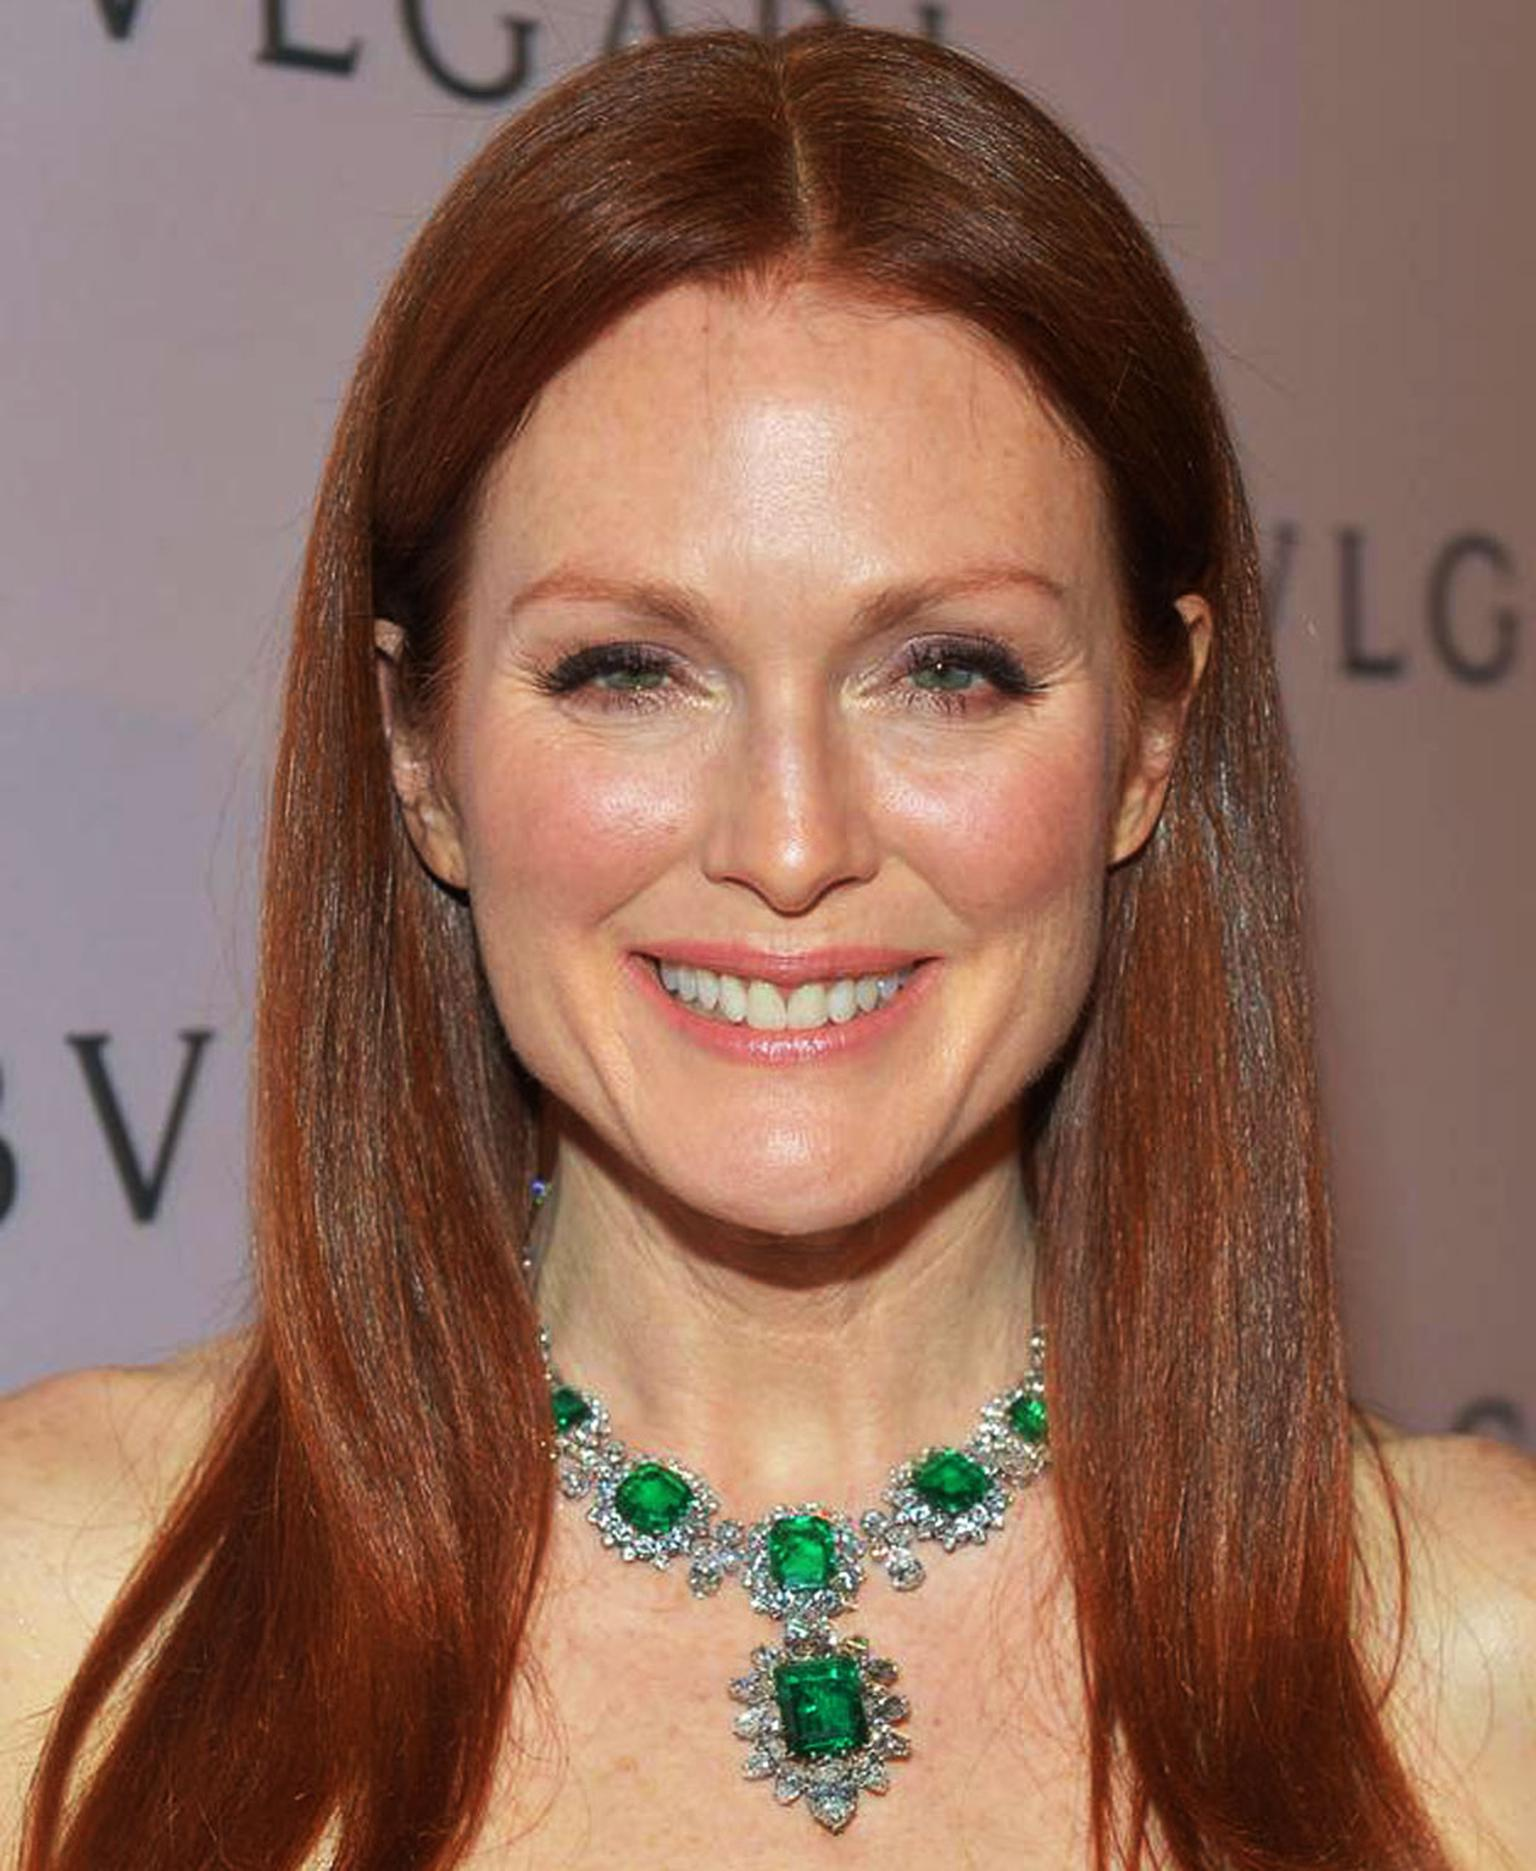 Bulgari-Julianne-Moore-2